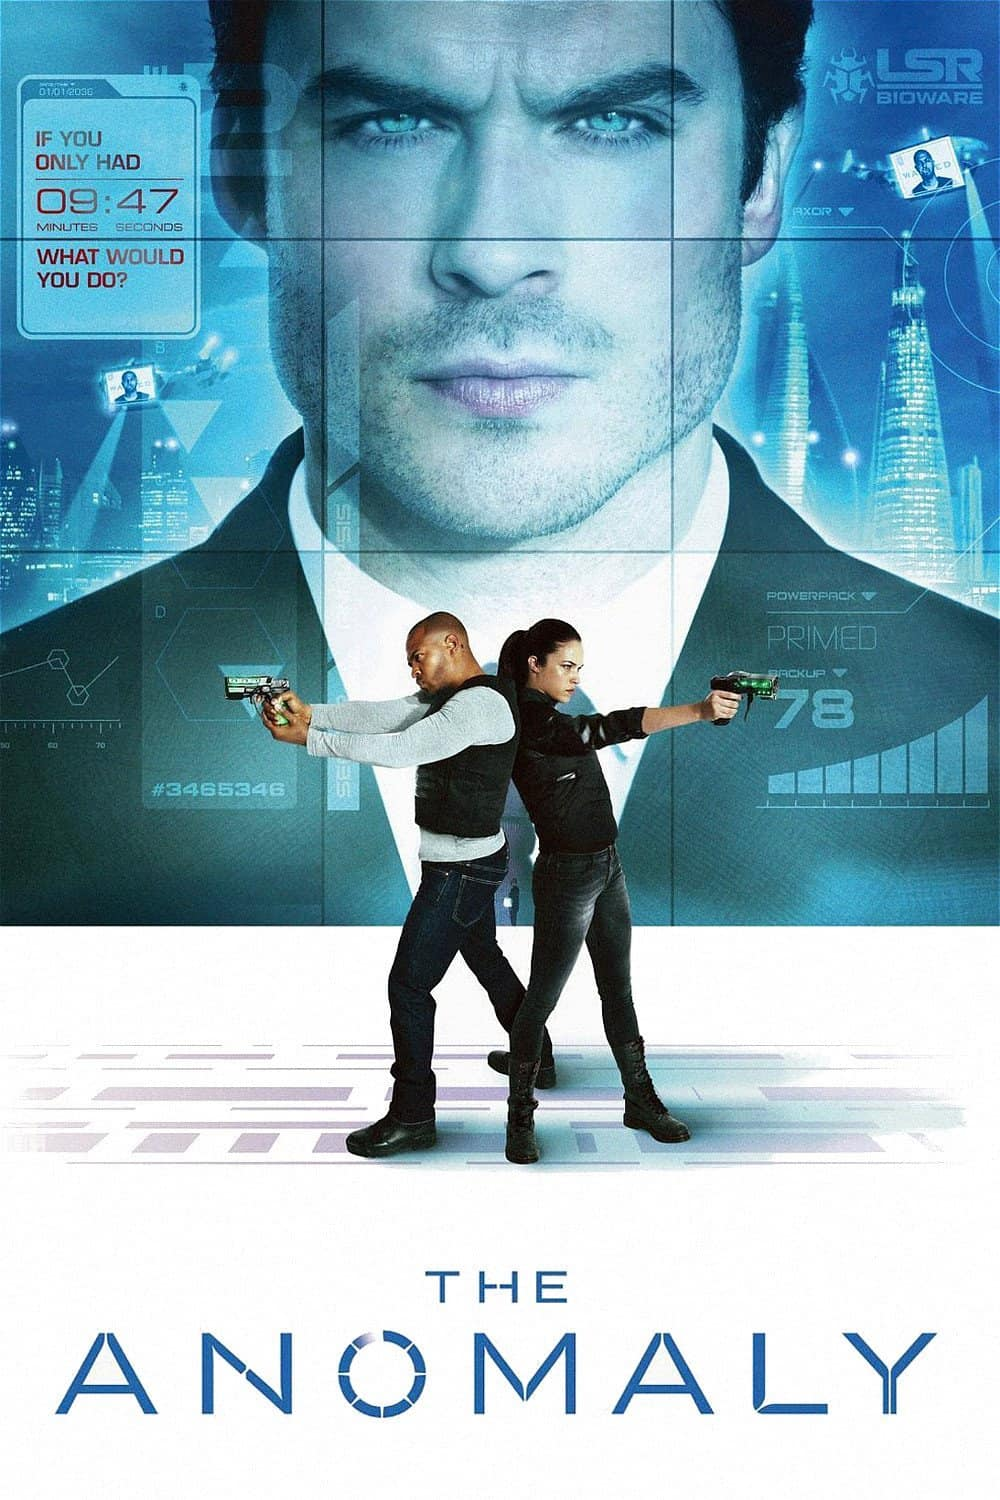 The Anomaly, 2014